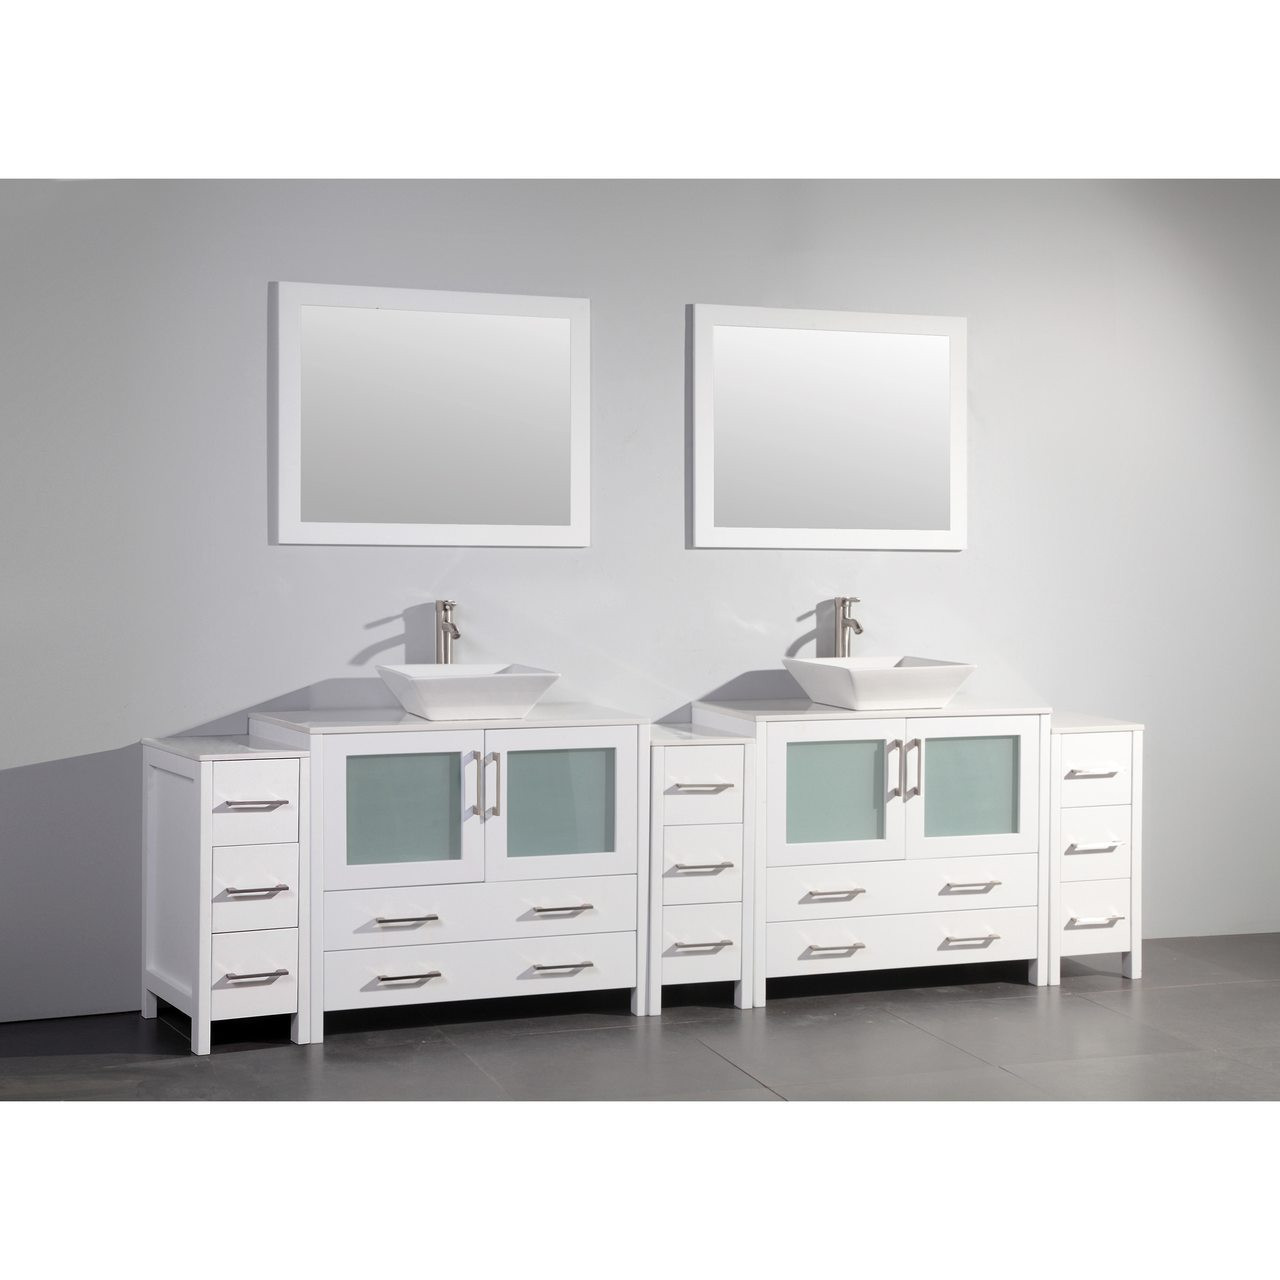 Vanity Art 108 Inch Double Sink Bathroom Vanity Cabinet With Two Sinks Two Mirror White